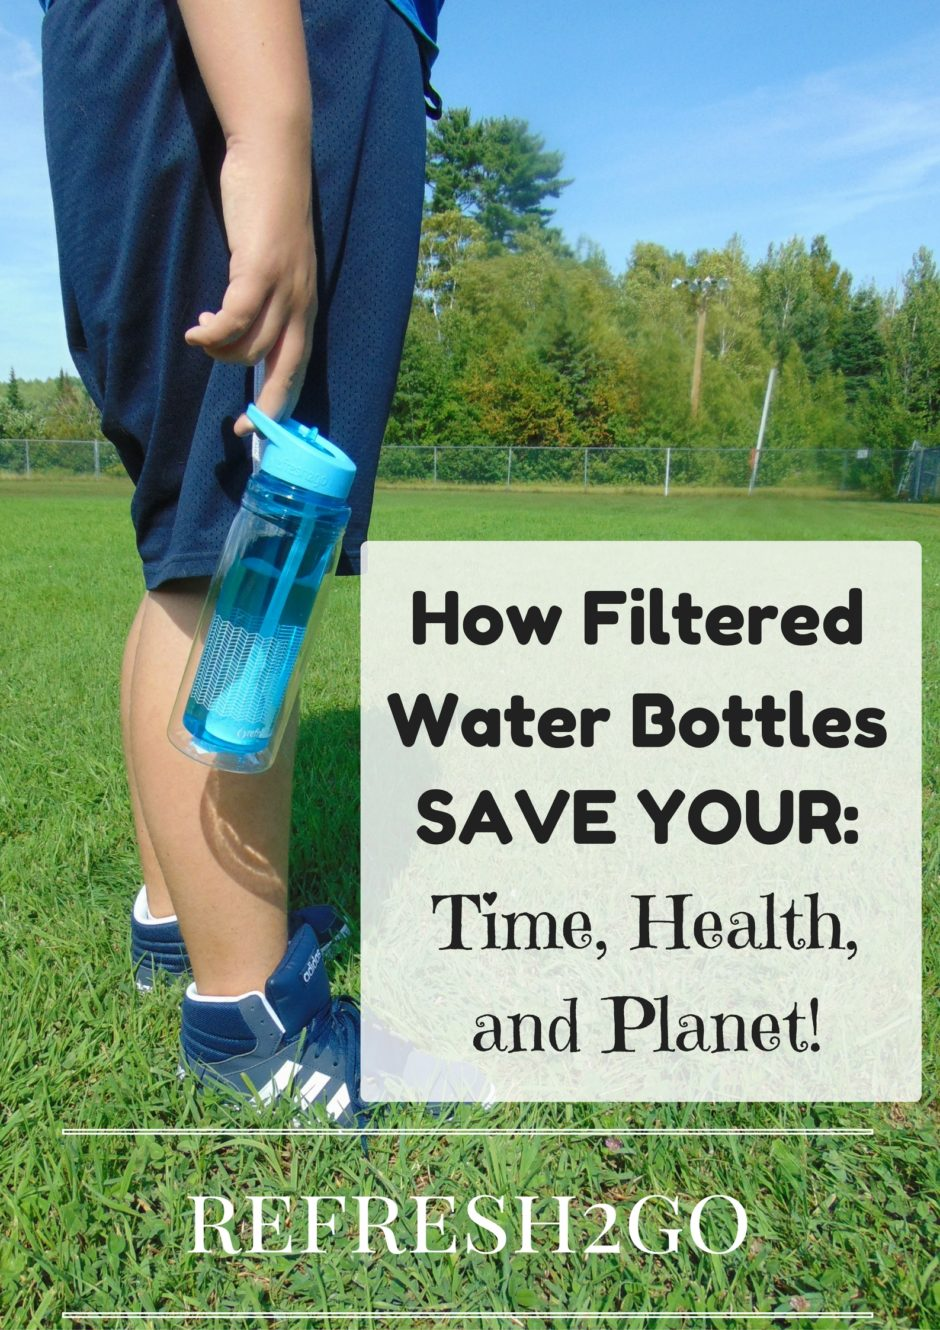 3 Reasons to Buy a Filtered Water Bottle #btsrefresh